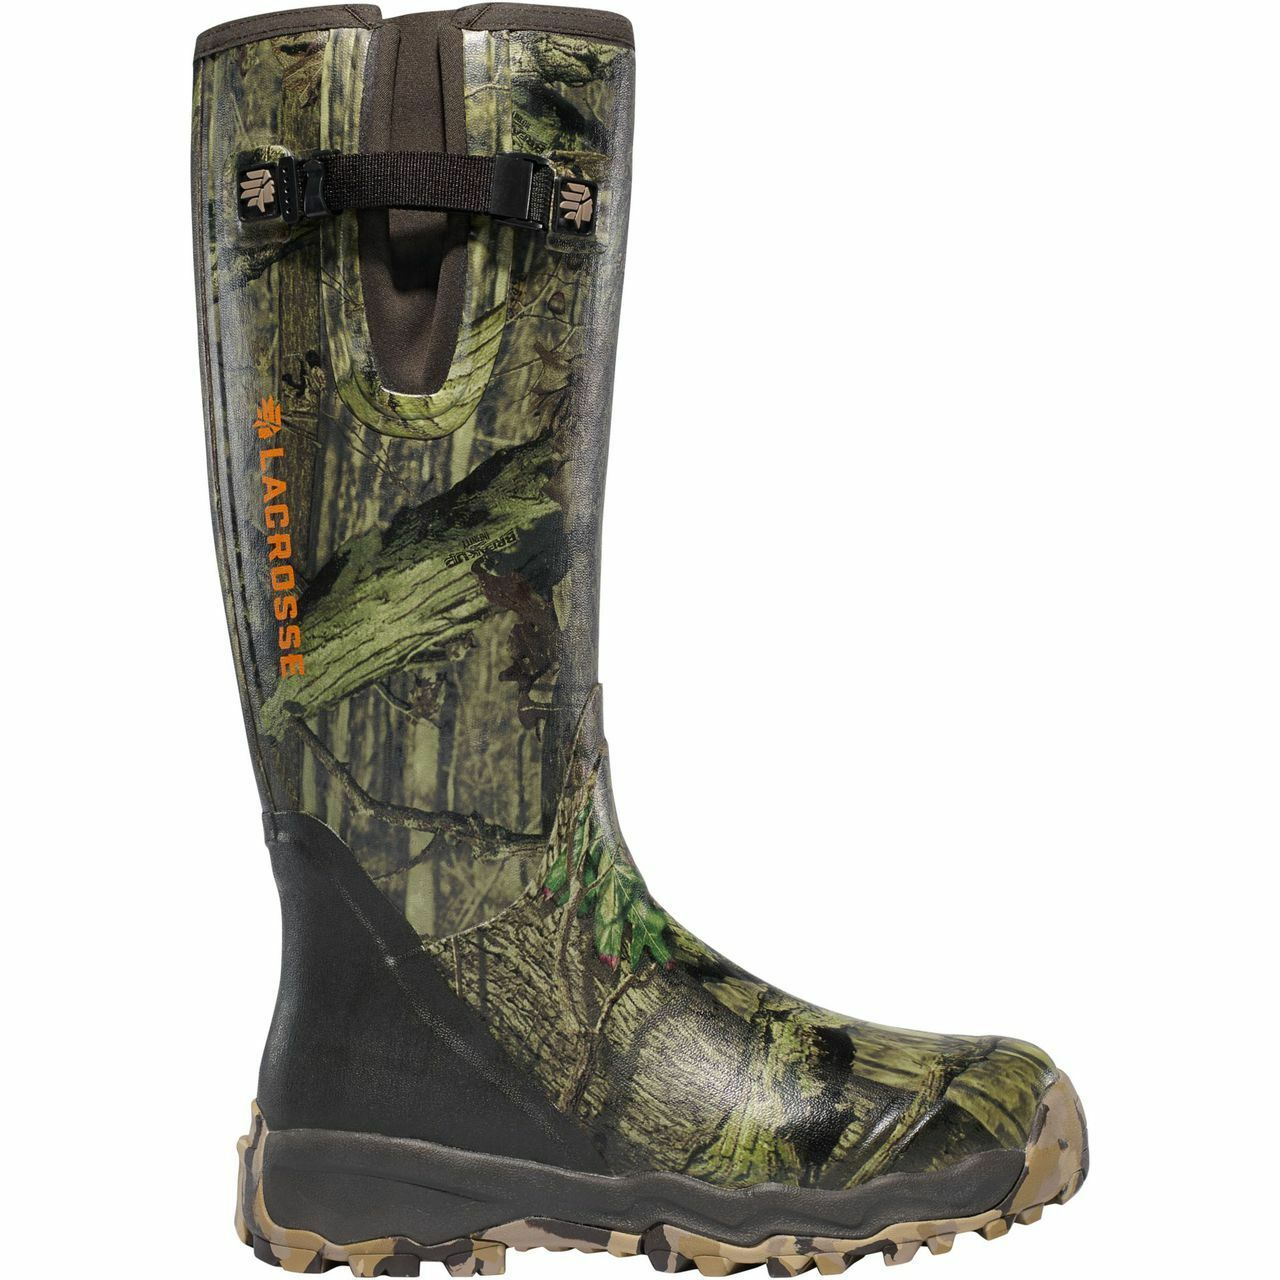 Lacrosse Alphaburly Pro Side Zip Hunting Boot - MOBU Infinity 3760007